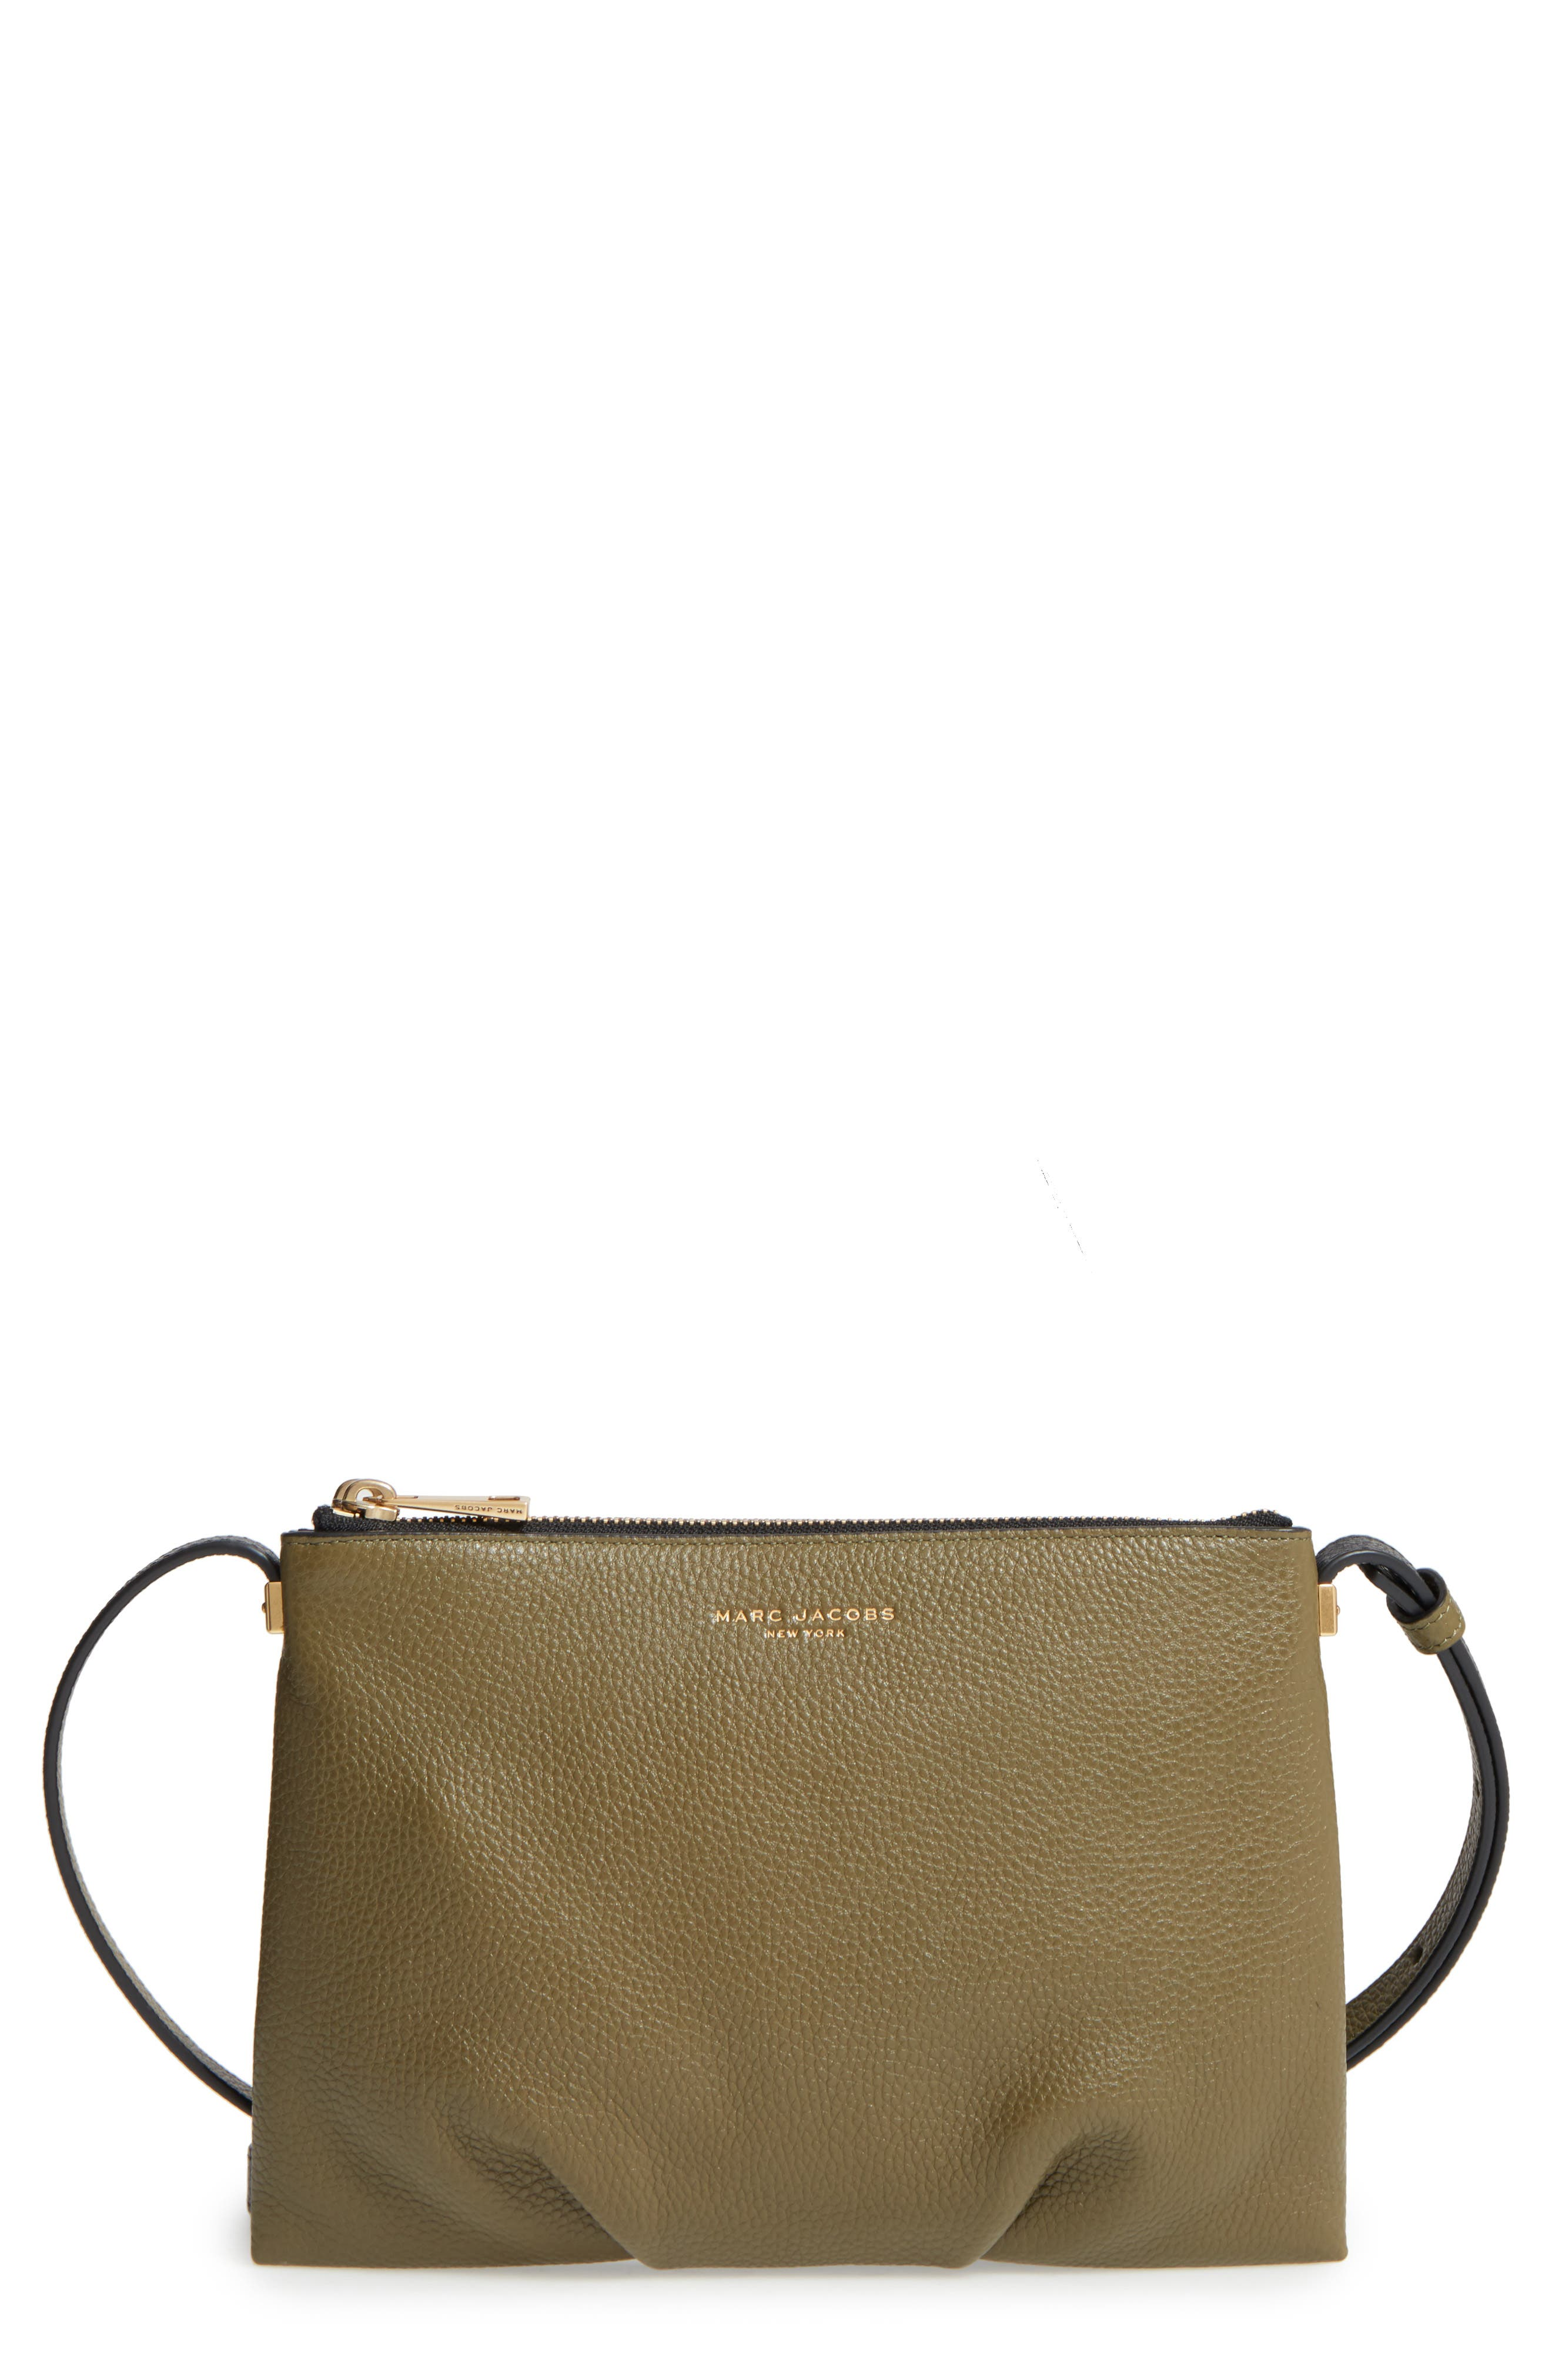 Main Image - MARC JACOBS The Standard Leather Crossbody Bag